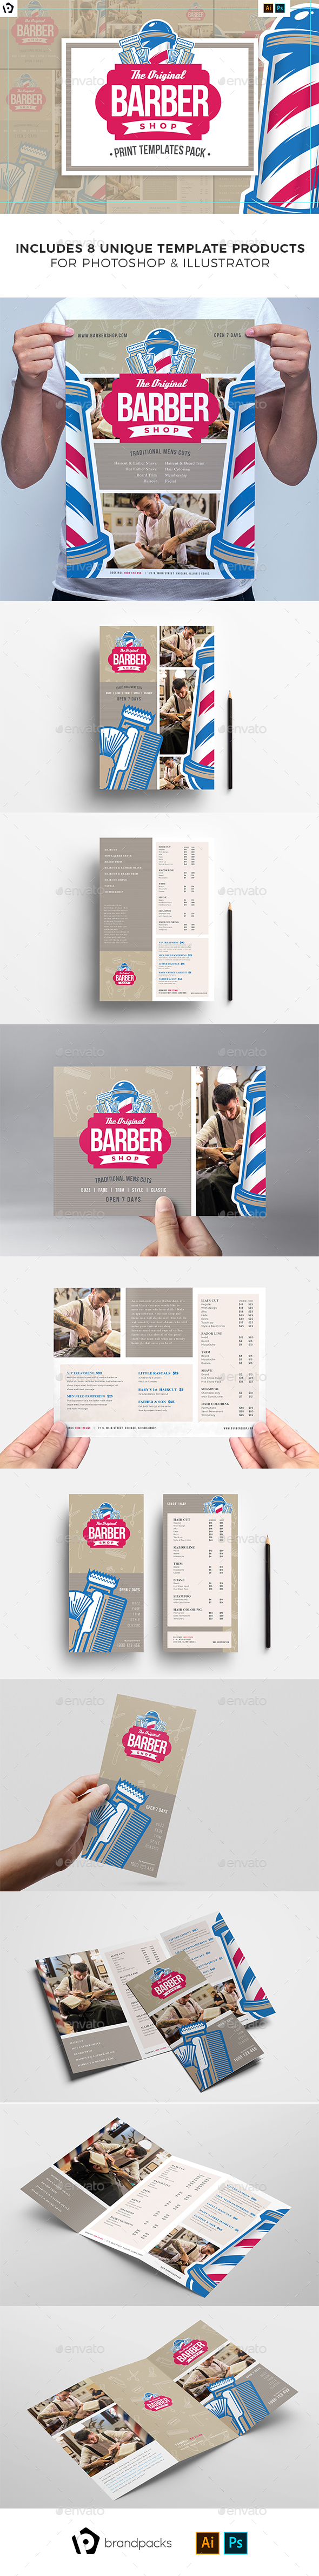 Barber Shop Print Templates Bundle - Commerce Flyers